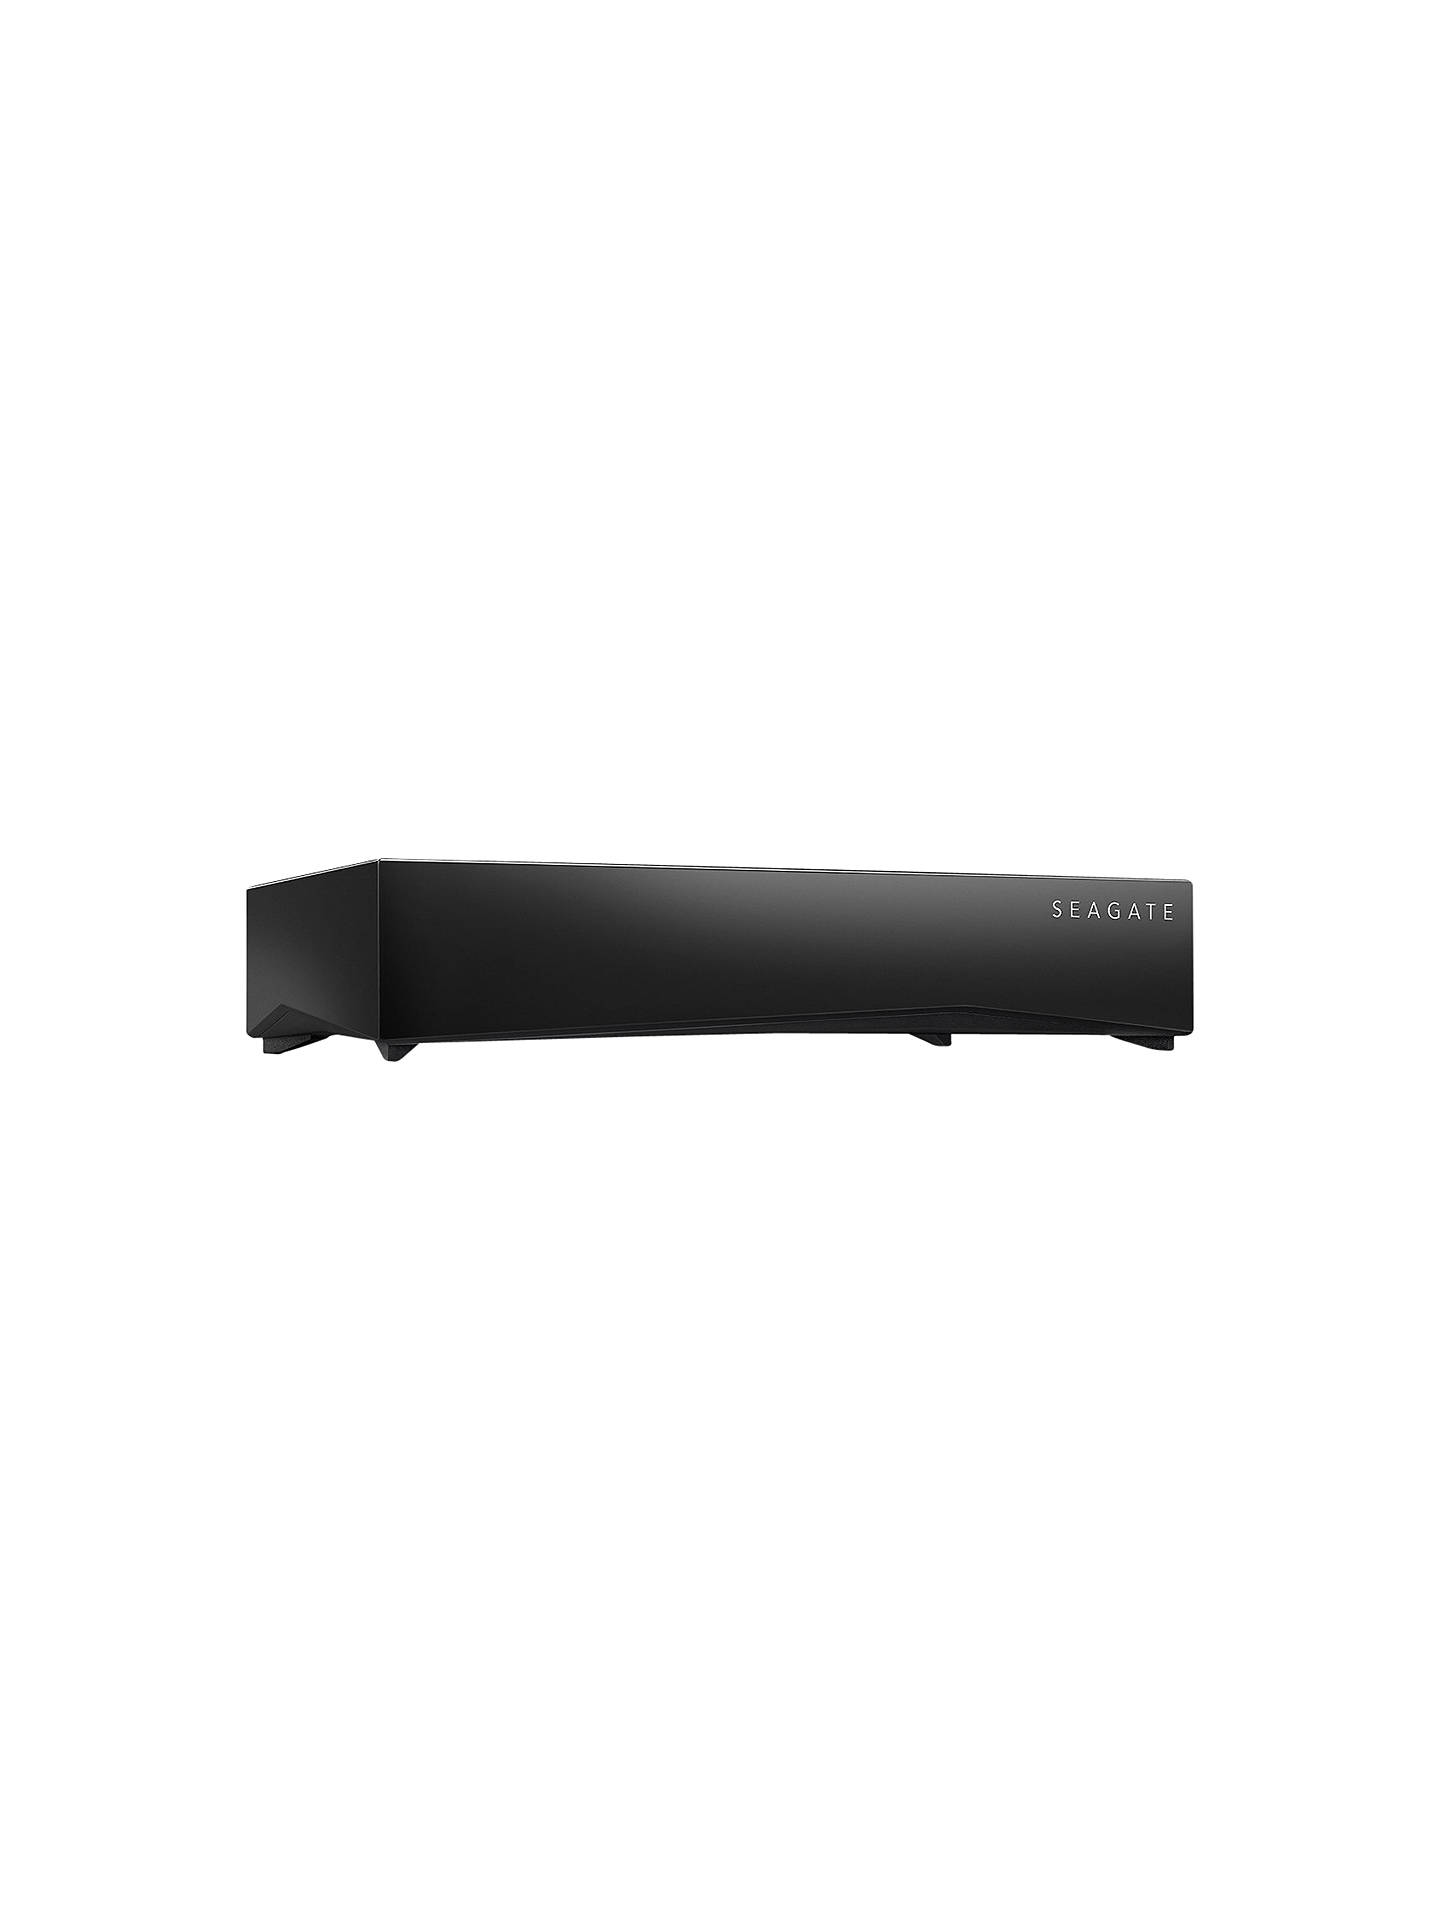 Seagate Central Personal Cloud Network Attached Storage (NAS) Drive